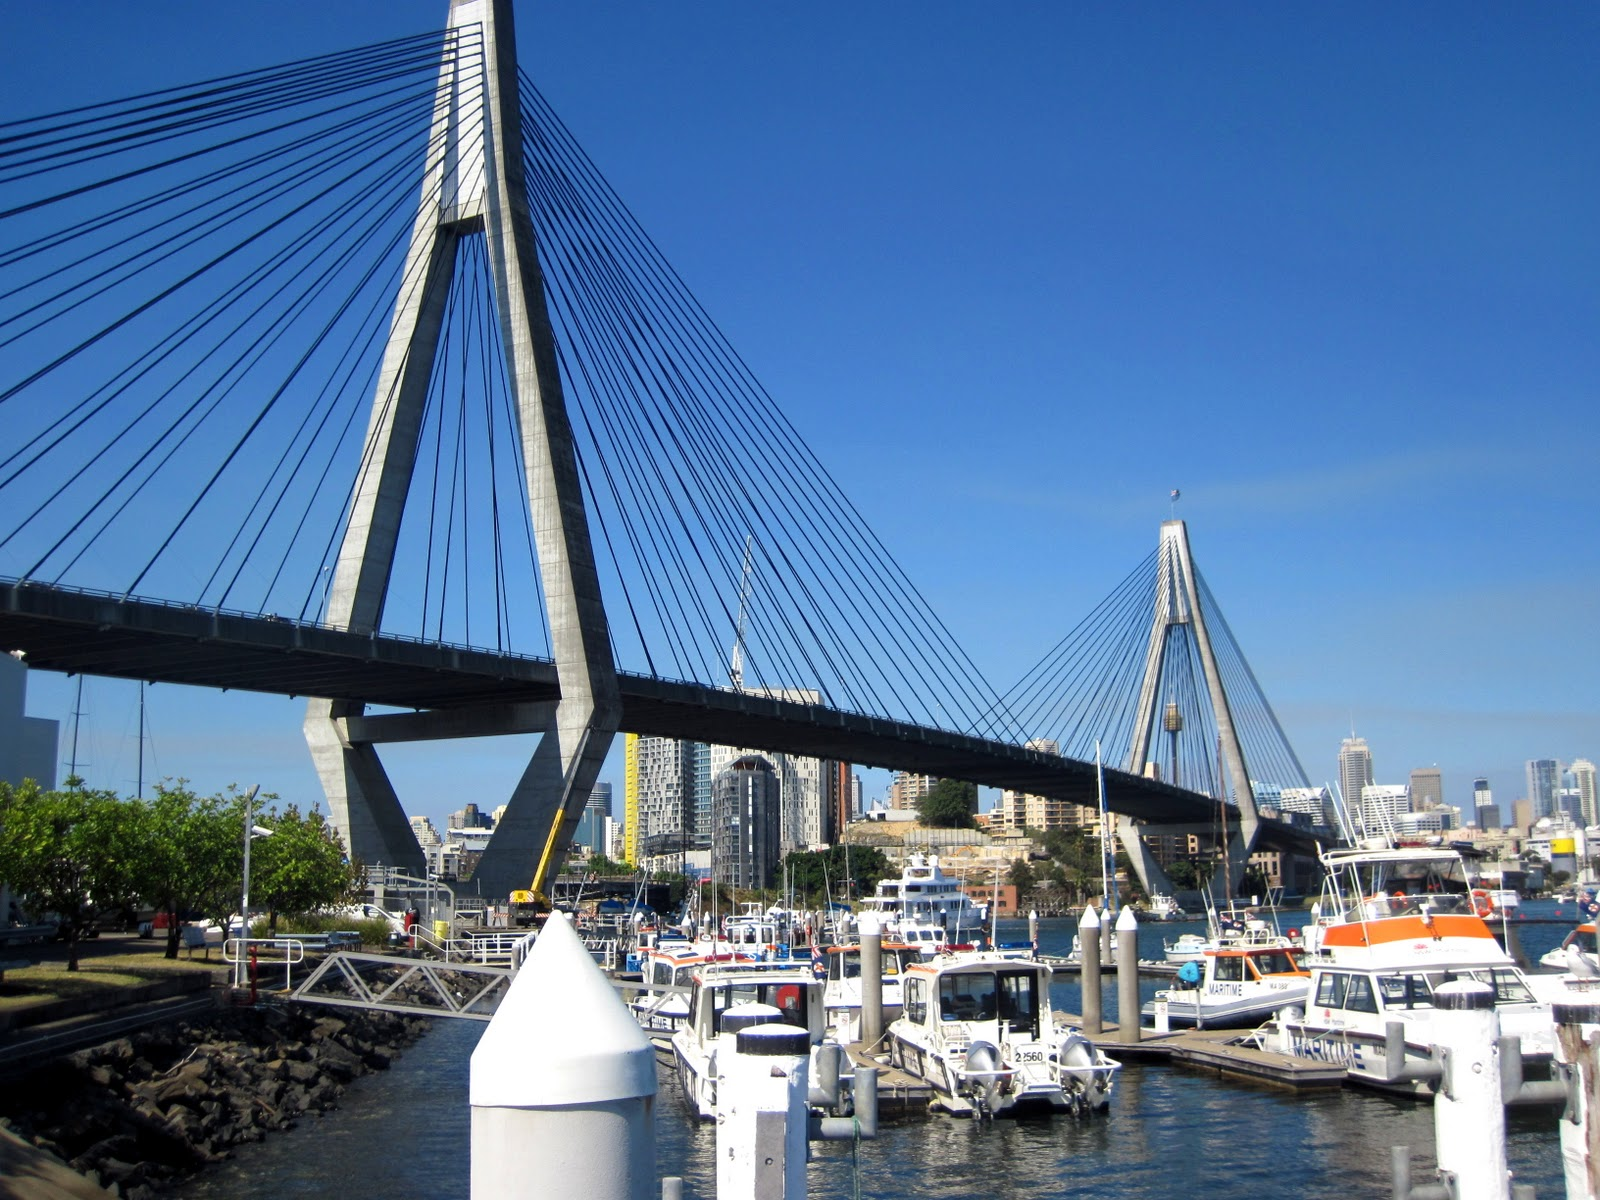 anzac bridge Anzac bridge: anzac bridge - see 28 traveler reviews, 42 candid photos, and great deals for sydney, australia, at tripadvisor.